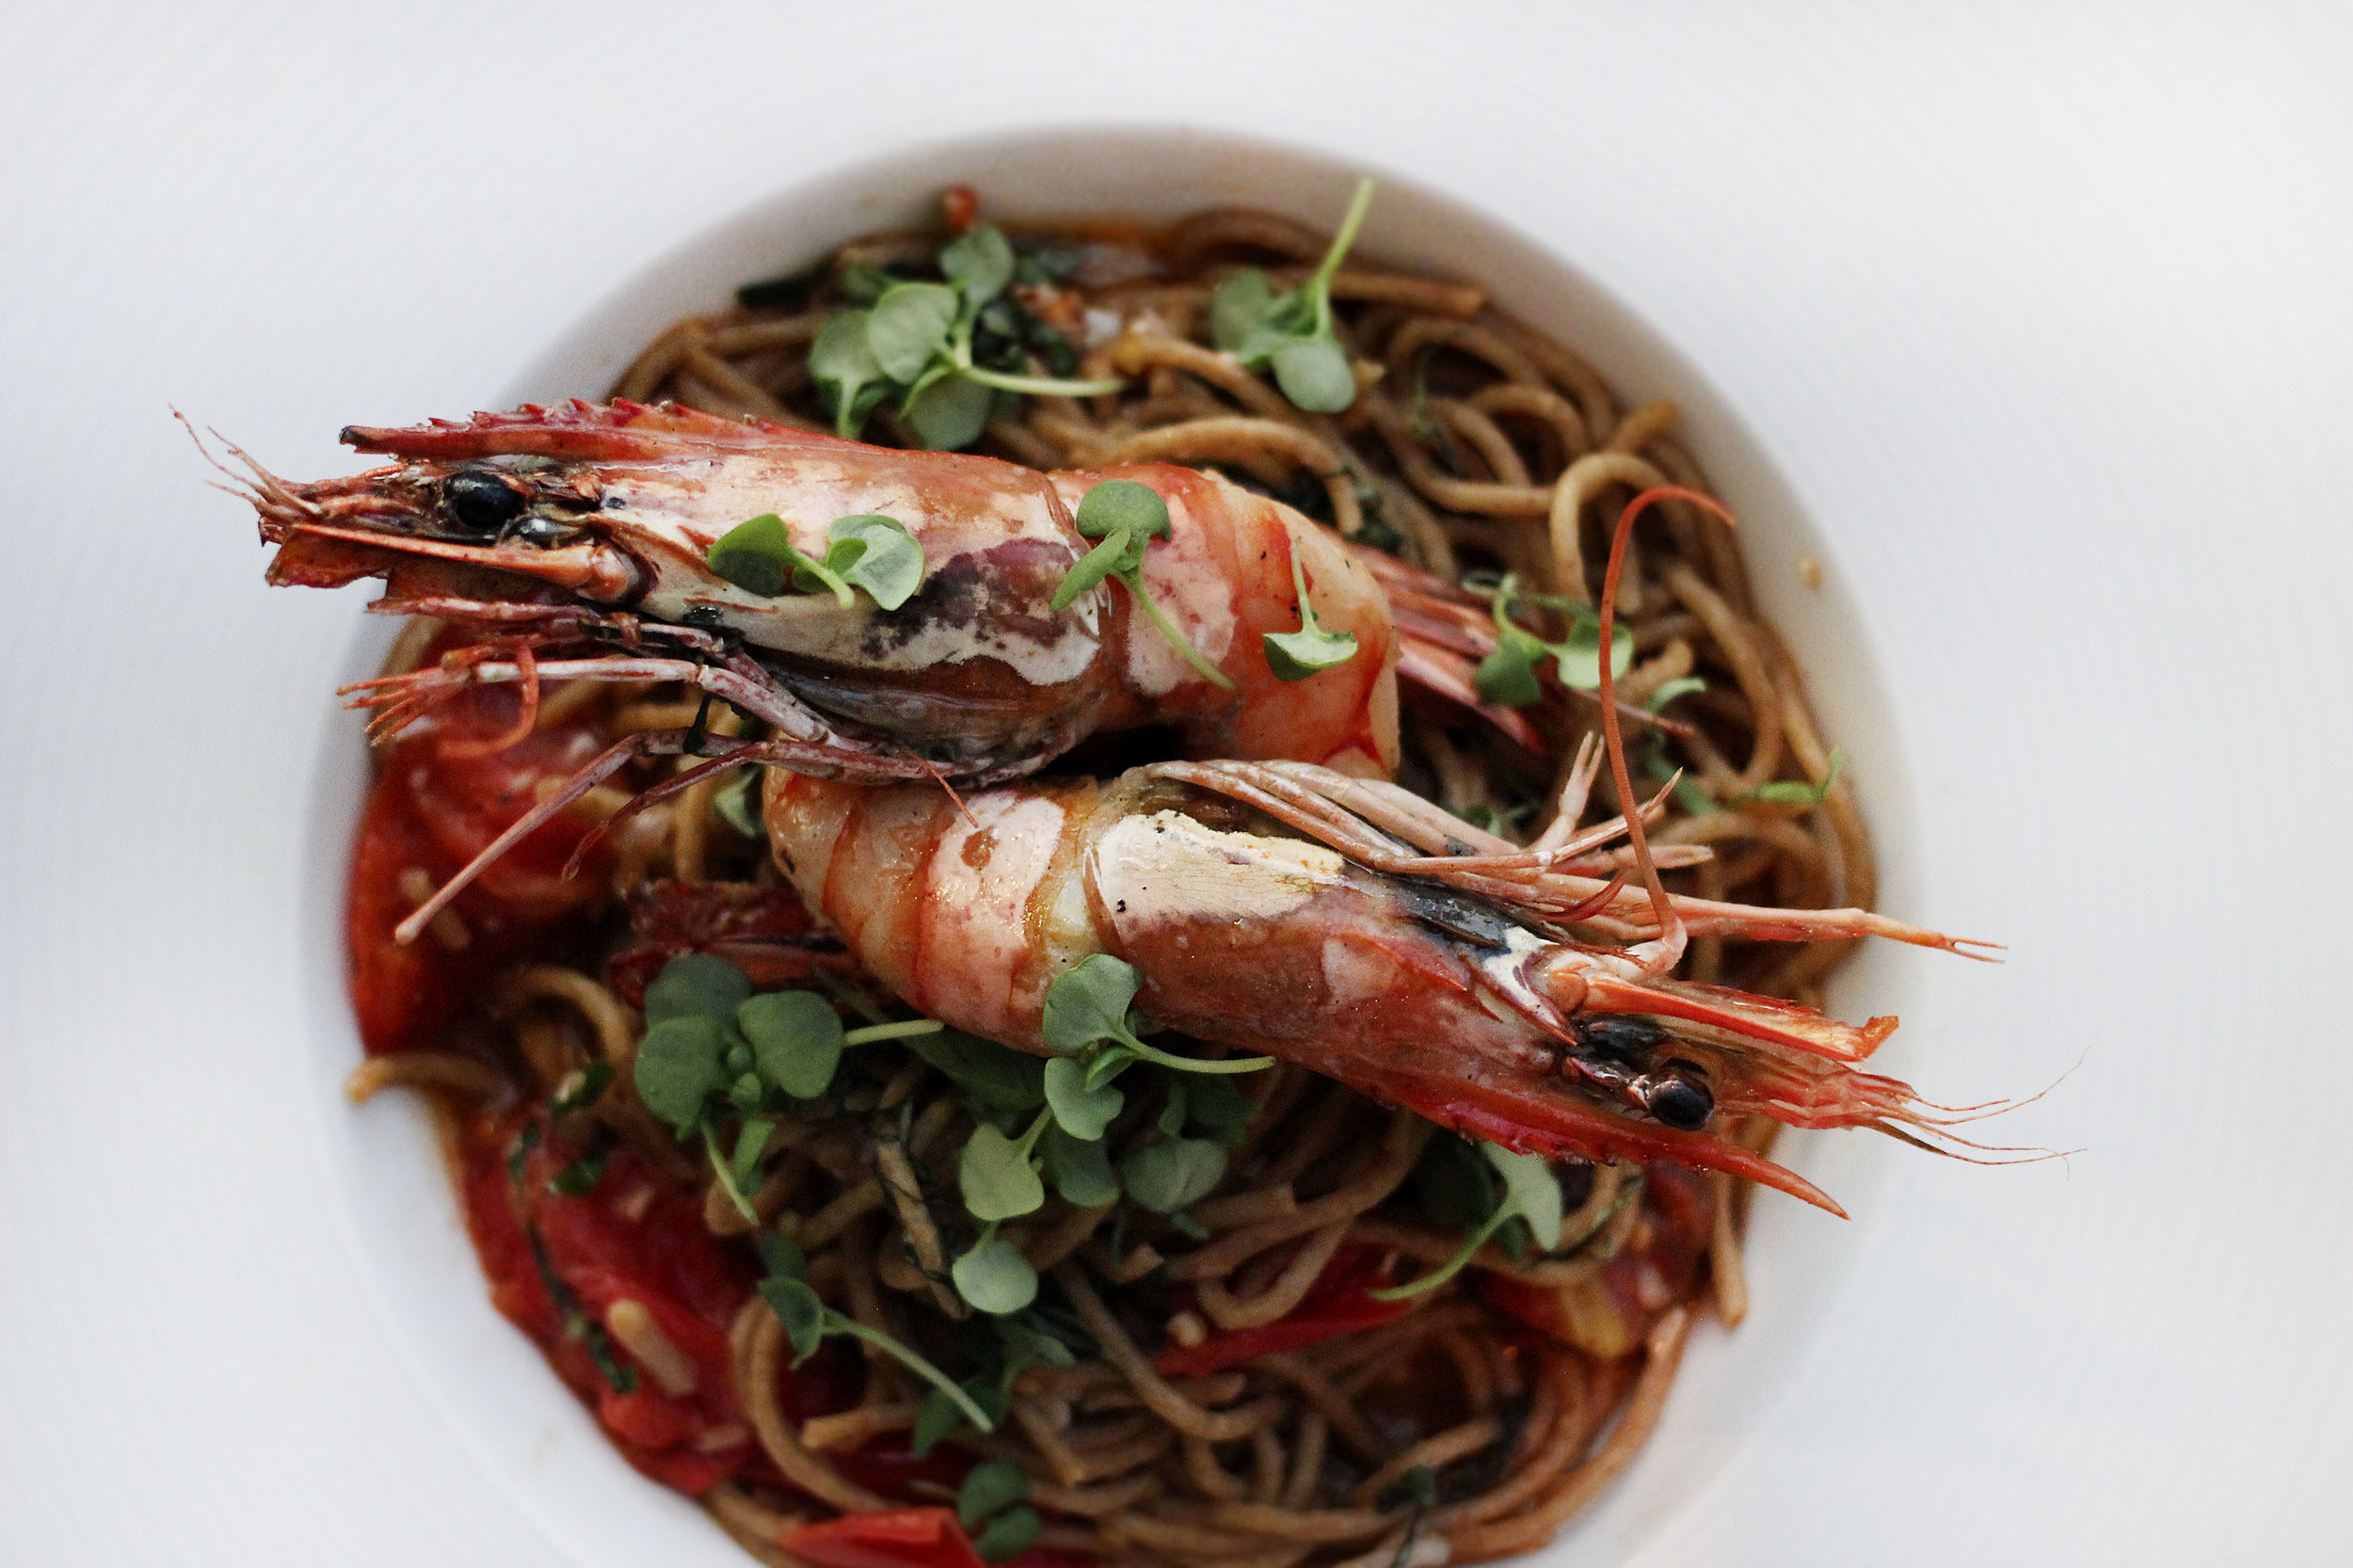 Prawns Pomodoro - locally milled wheat pasta, heirloom tomatoes garlic, basil